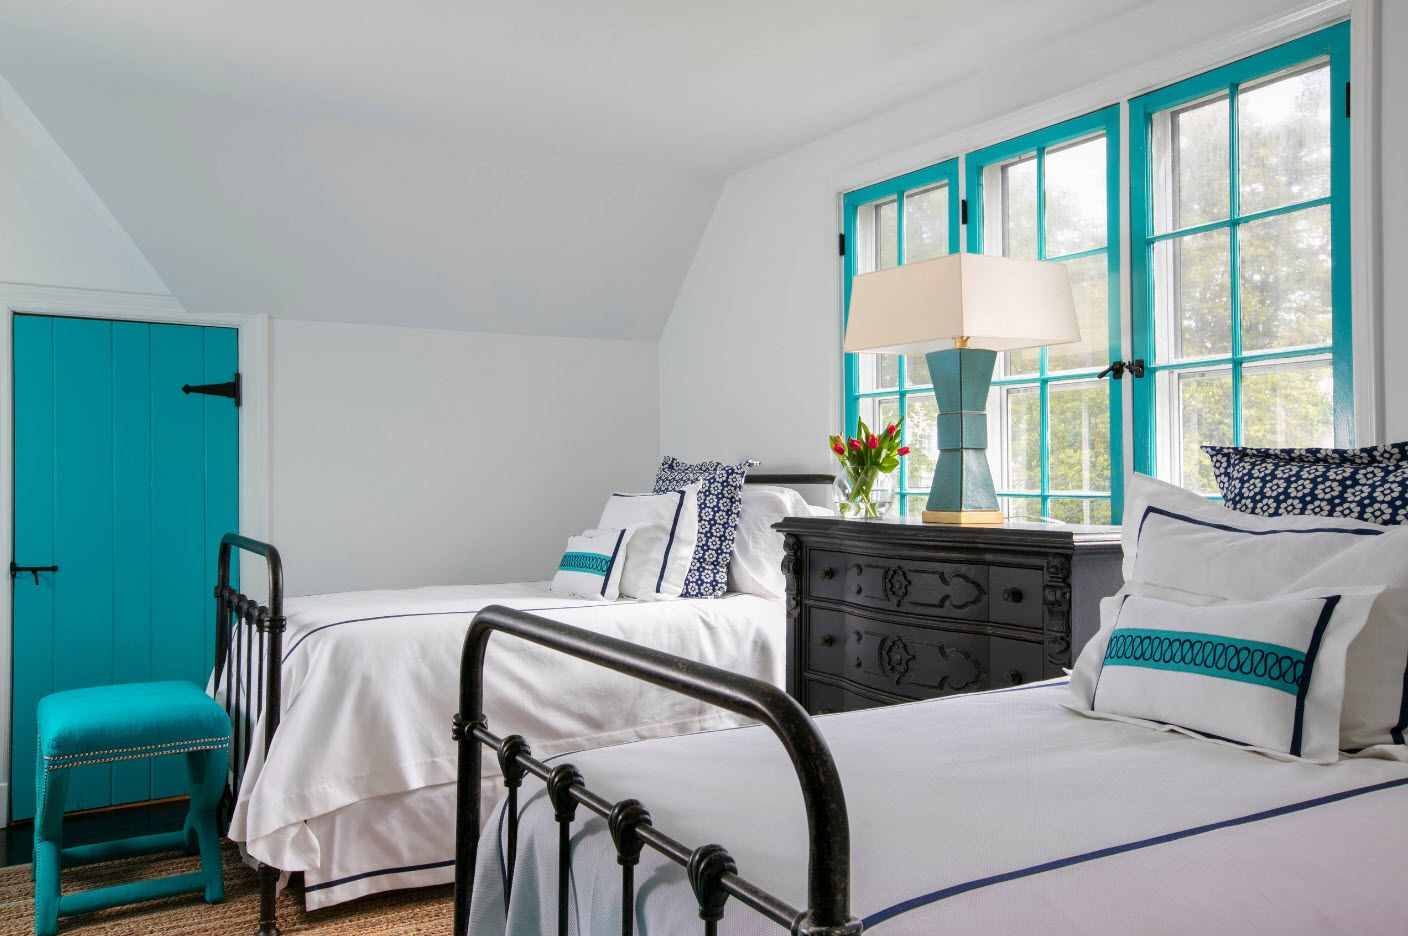 Bright turquoise window frame and two beds with classic chest between them